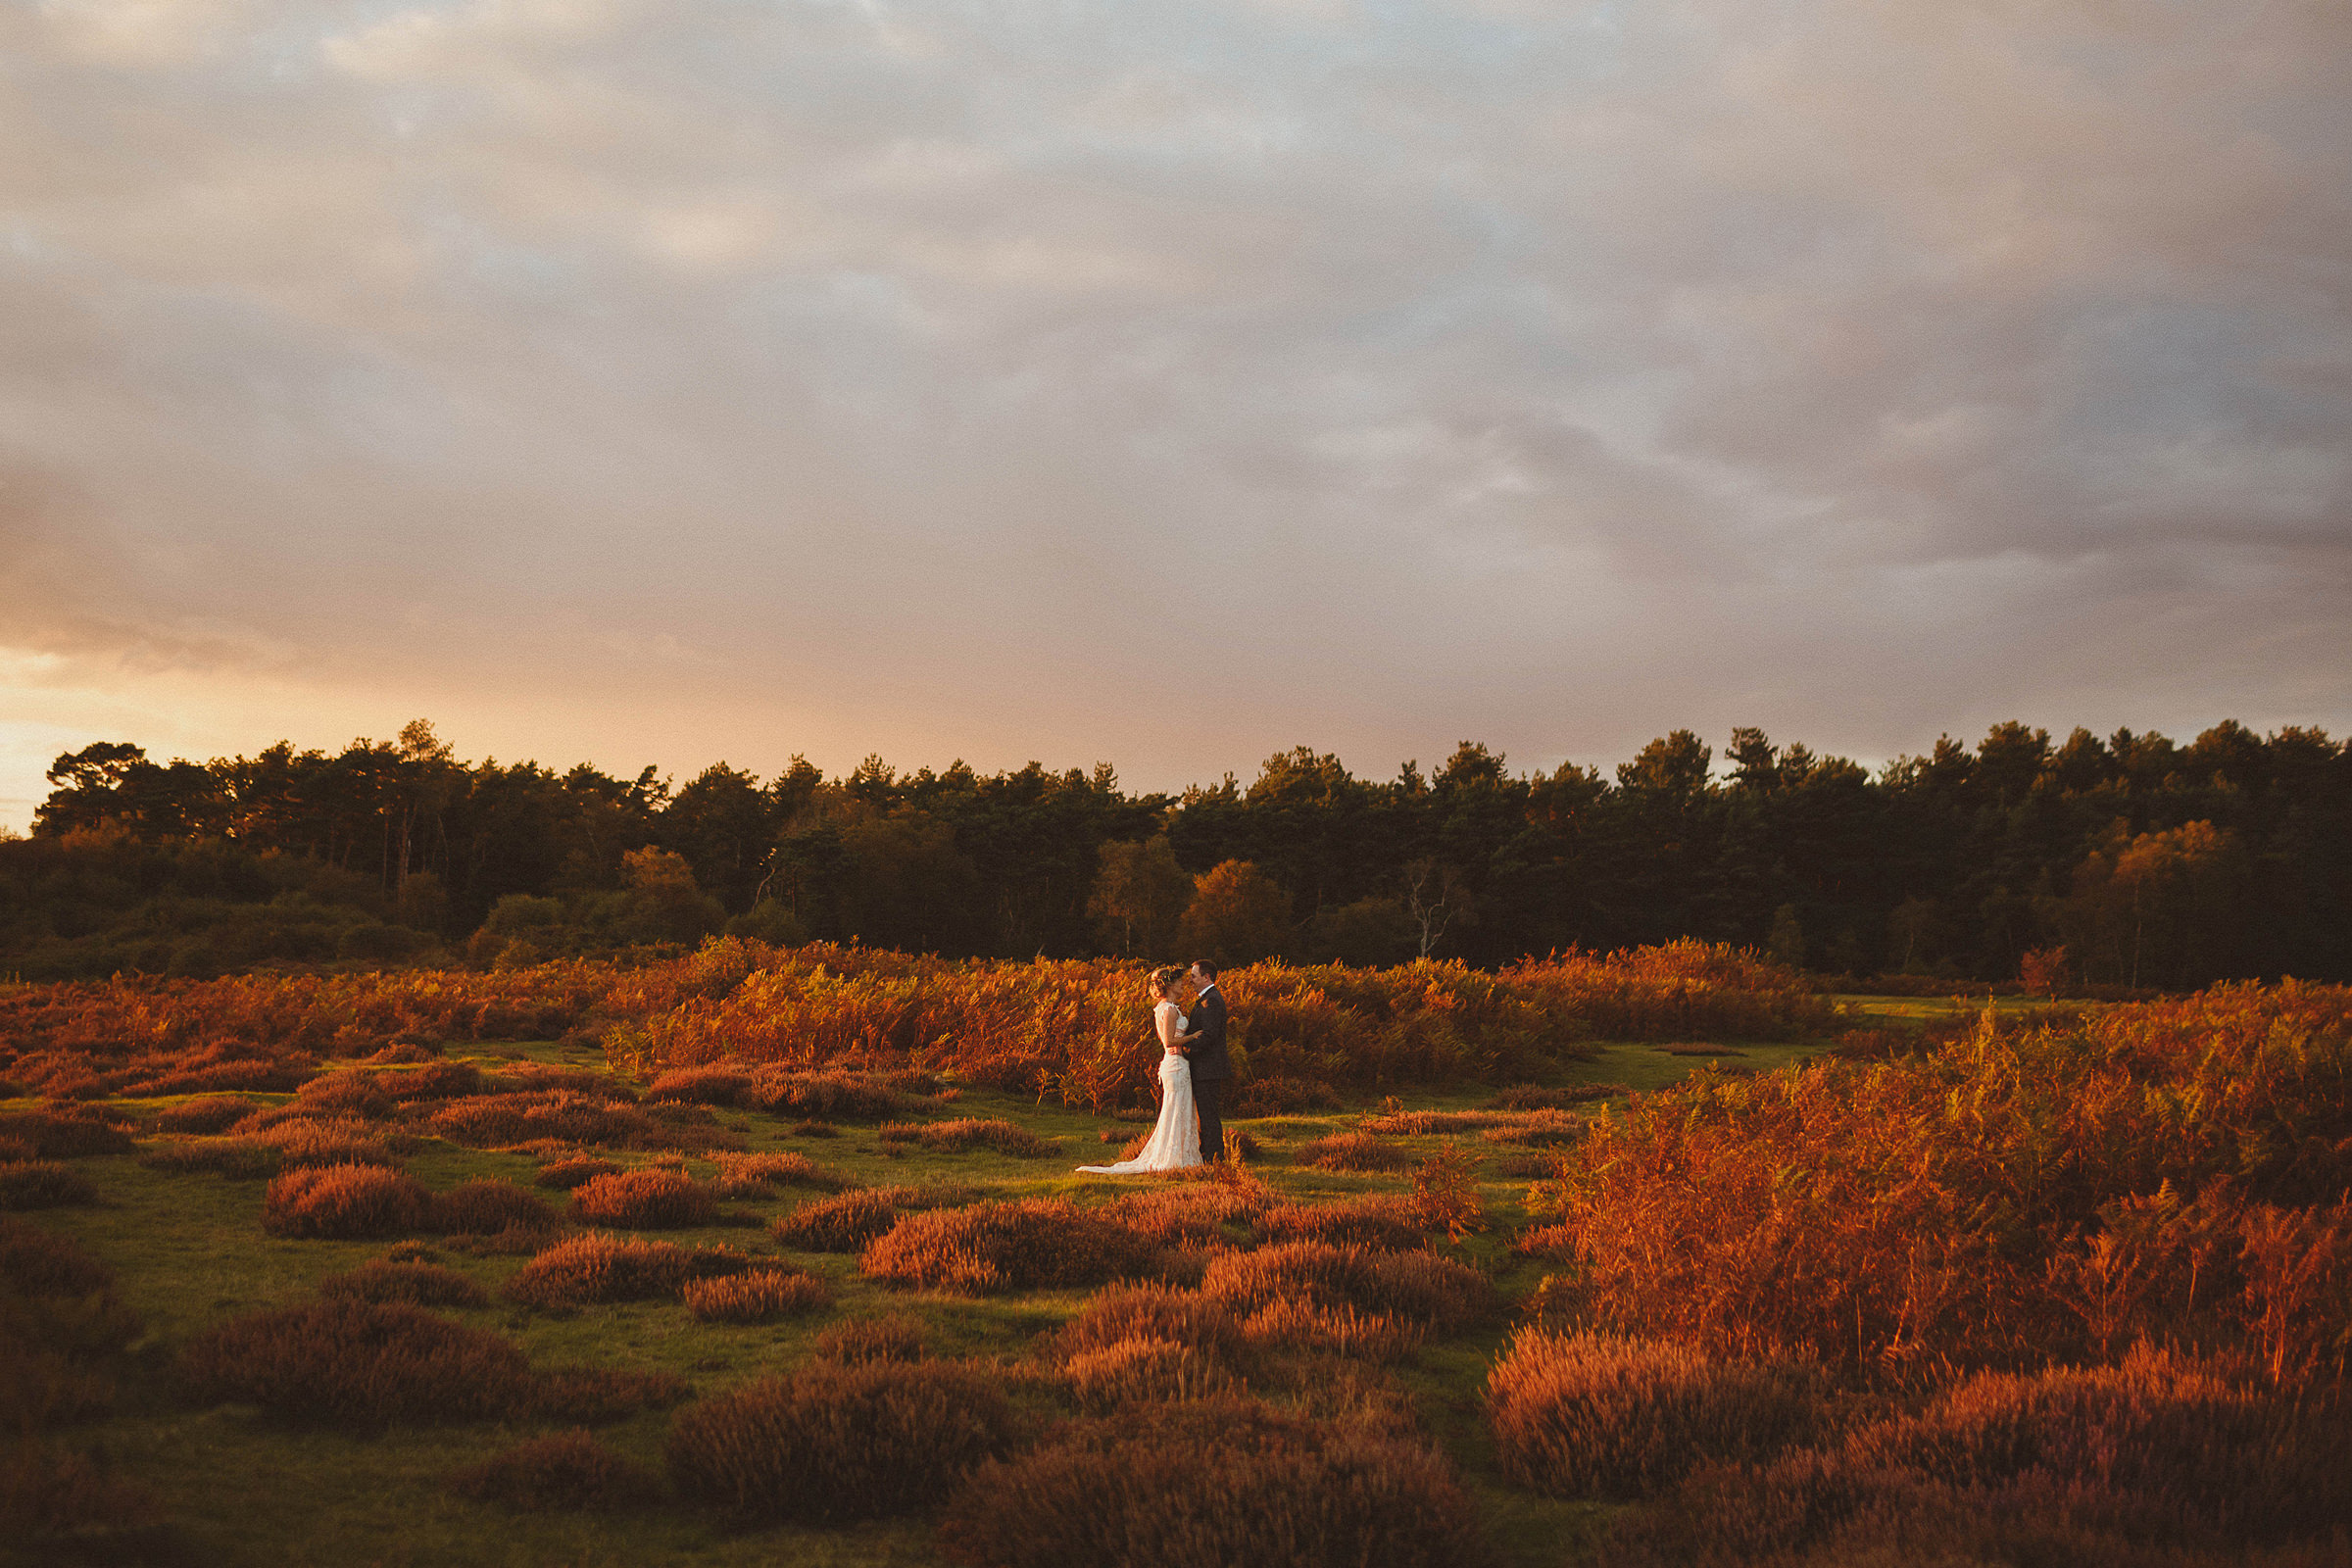 landscape-couple-portrait-in-red-and-green-field-ed-peers-photography